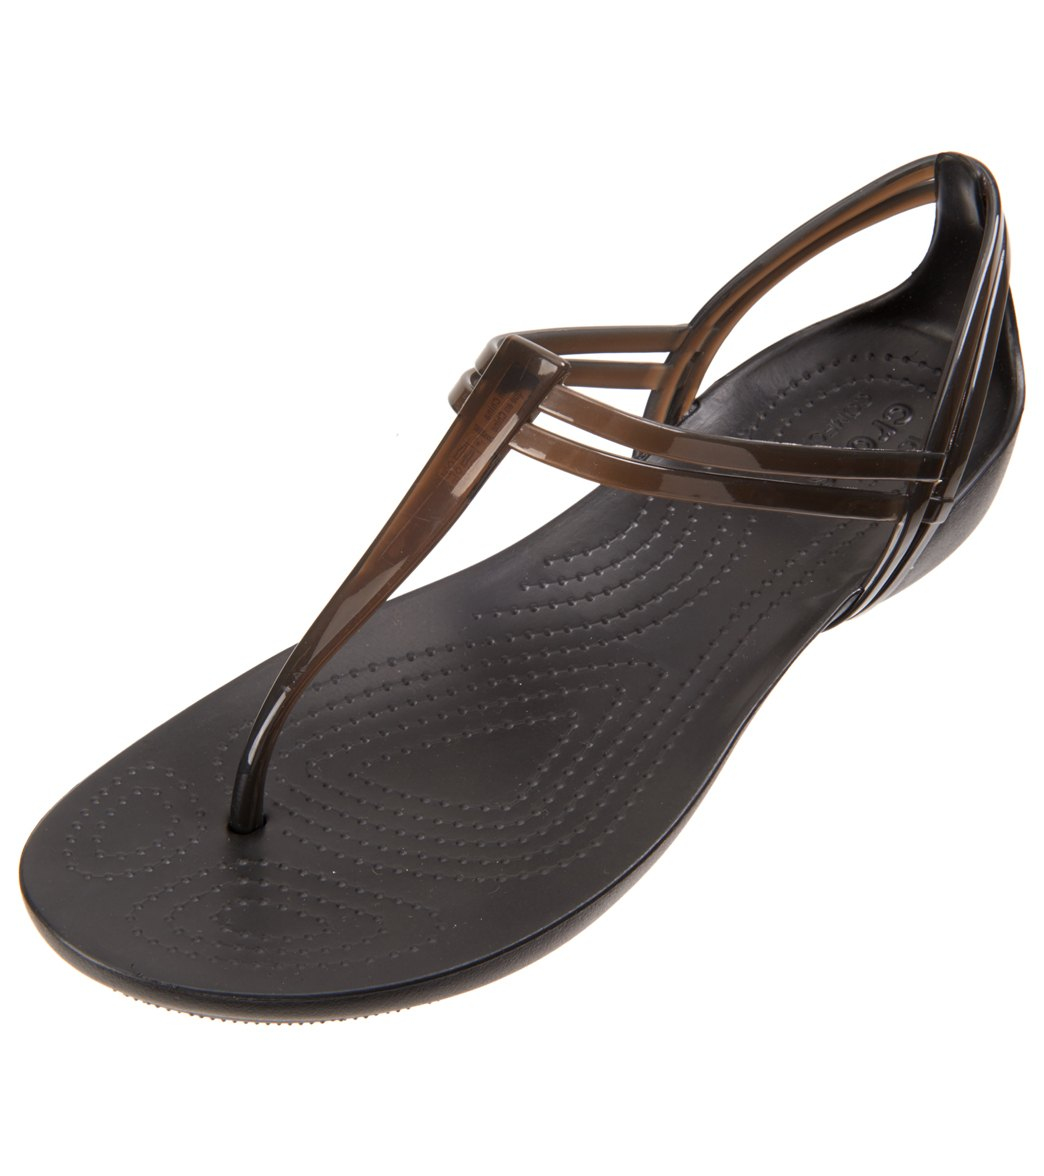 1ff43b8e3a5 Crocs Women s Crocs Isabella T-Strap at SwimOutlet.com